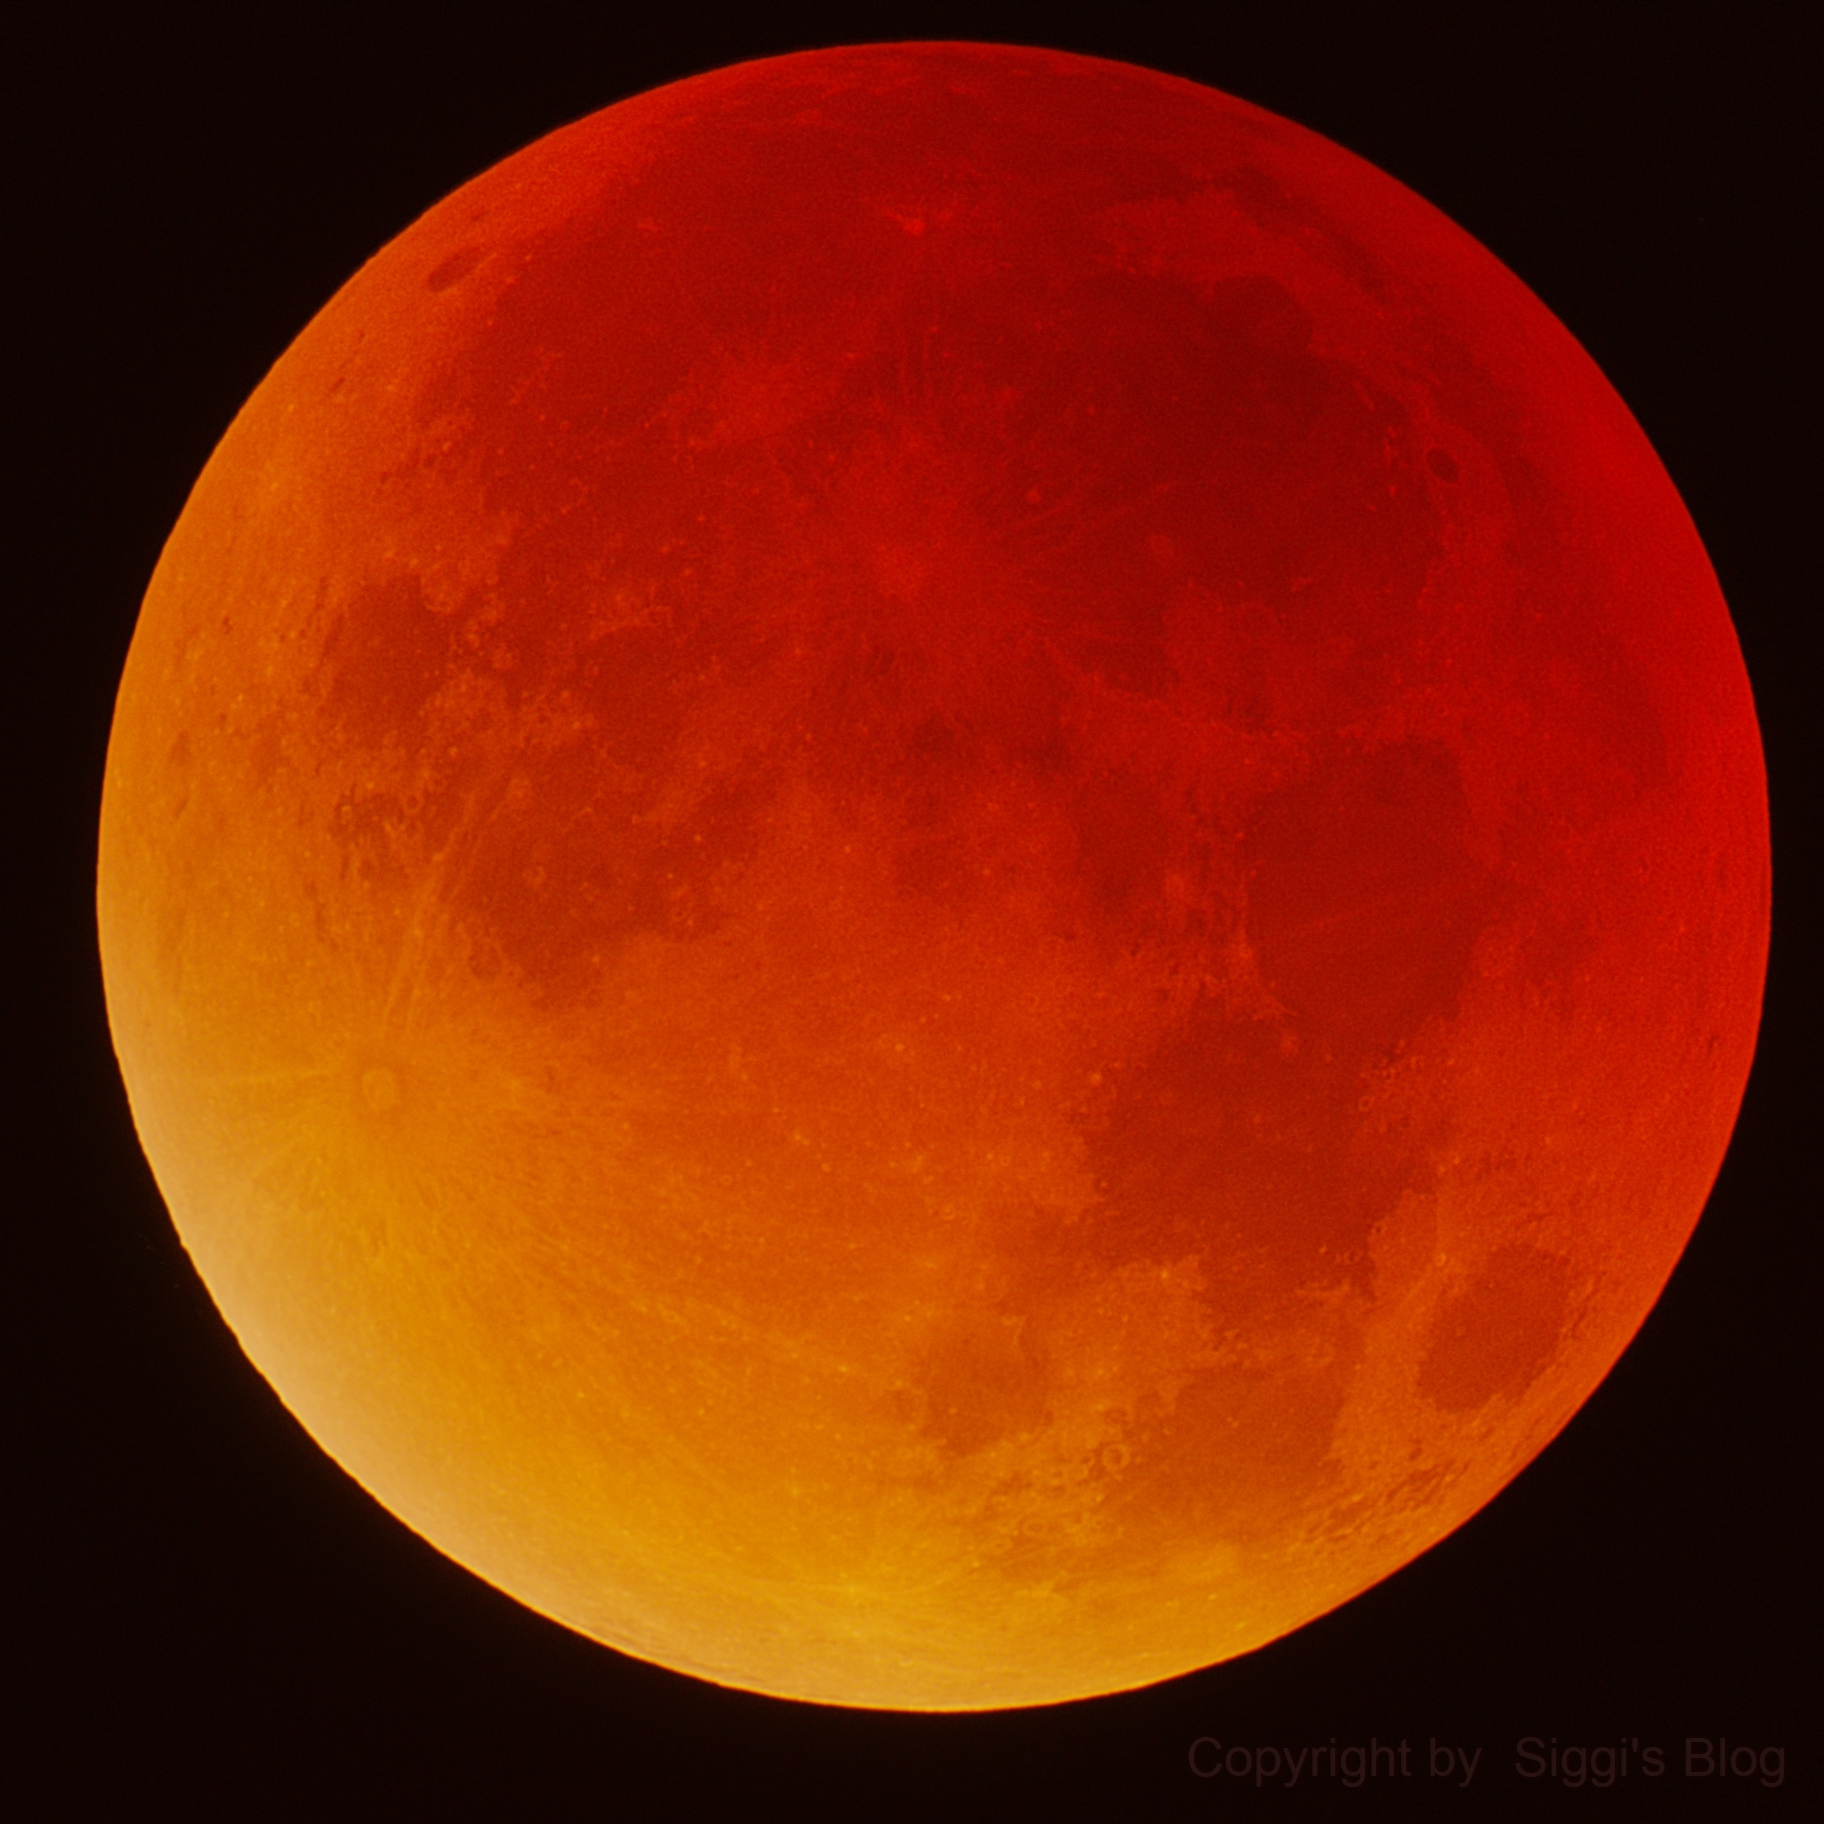 Moon Totality Eclipse 09/27/2015,                                Siegfried